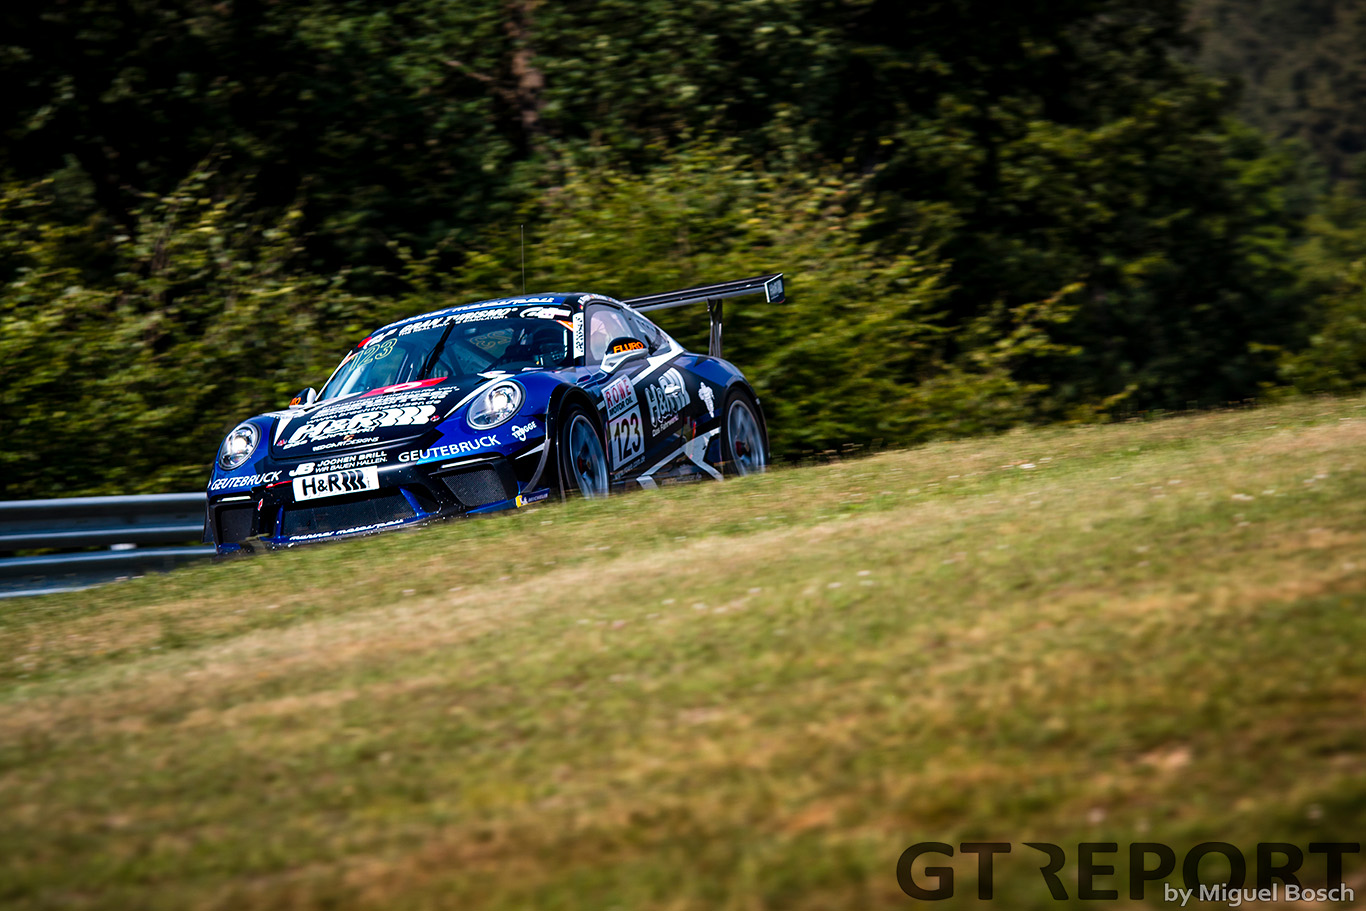 VLN4 gallery: Summer holidays vs. race routine, Pt.II